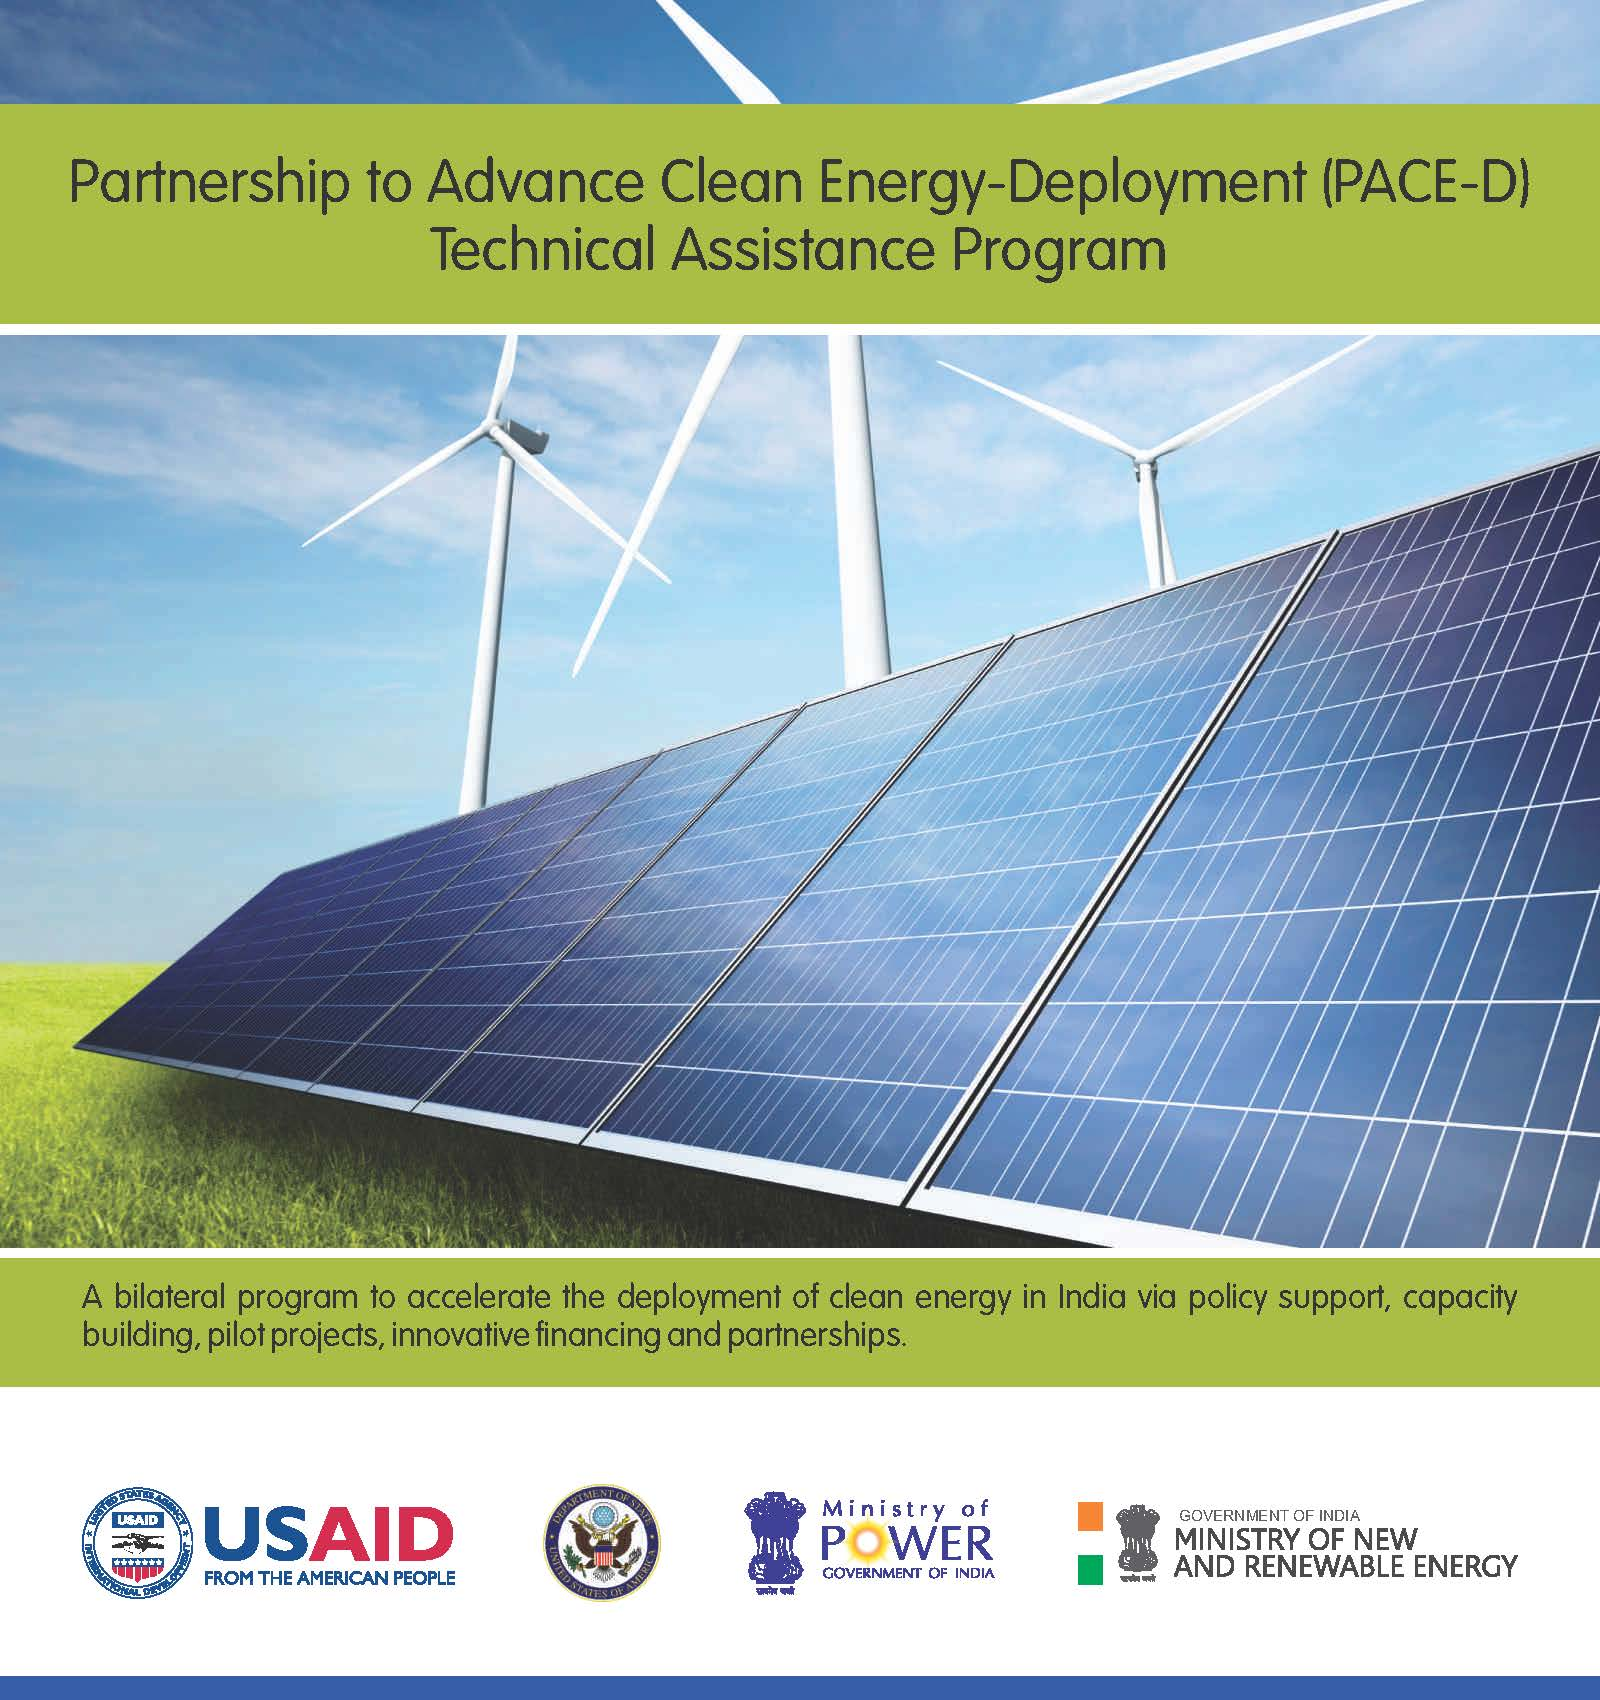 Brochure: Partnership to Advance Clean Energy-Deployment (PACE-D) Technical Assistance Program